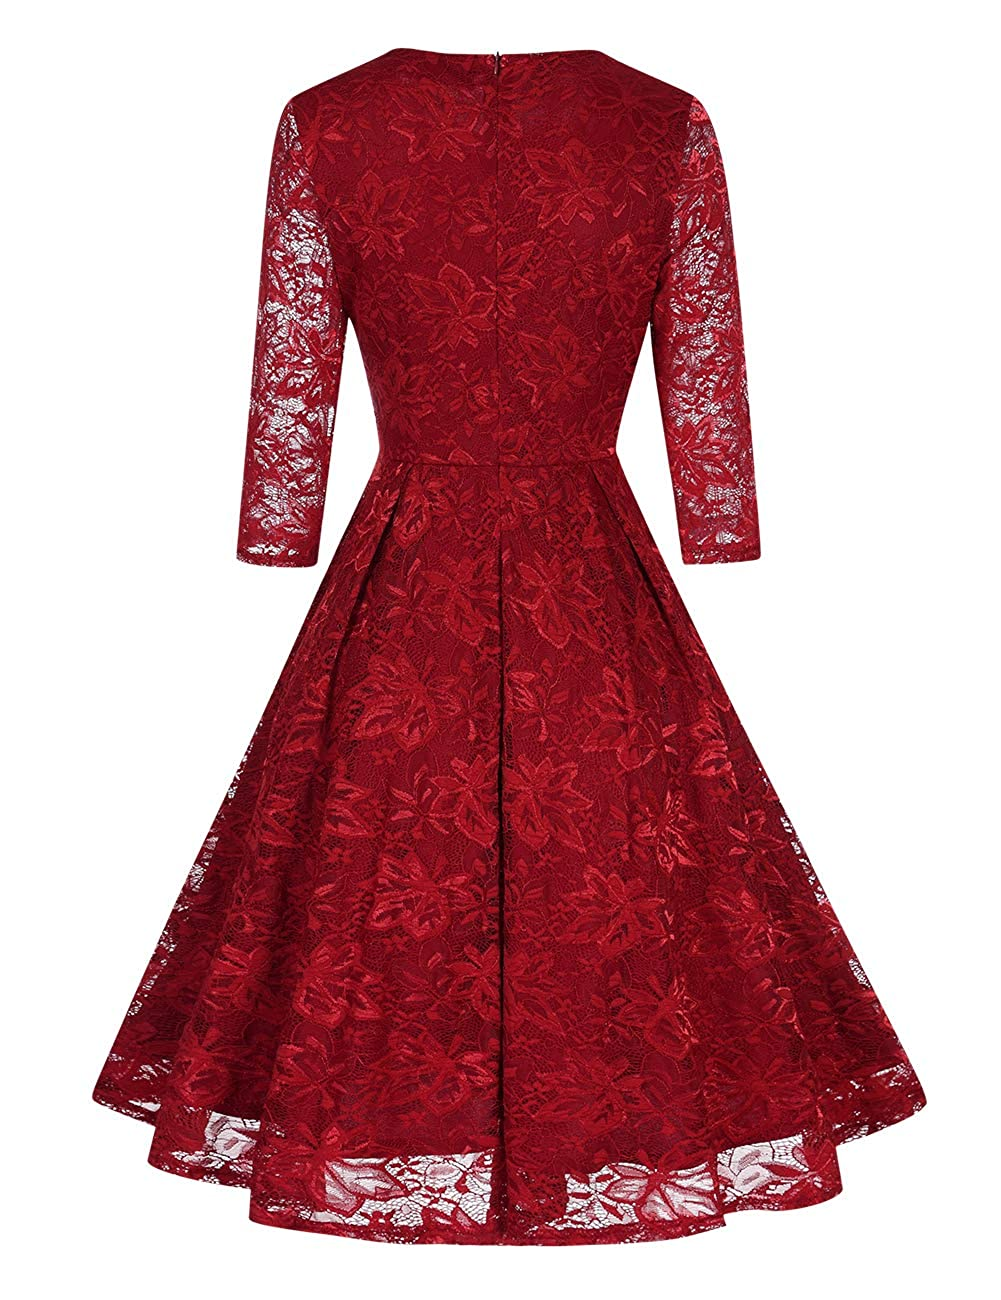 Women Lace Dress 3//4 Sleeve Party Cocktail Wedding Fit and Flare Midi Evening Dresses